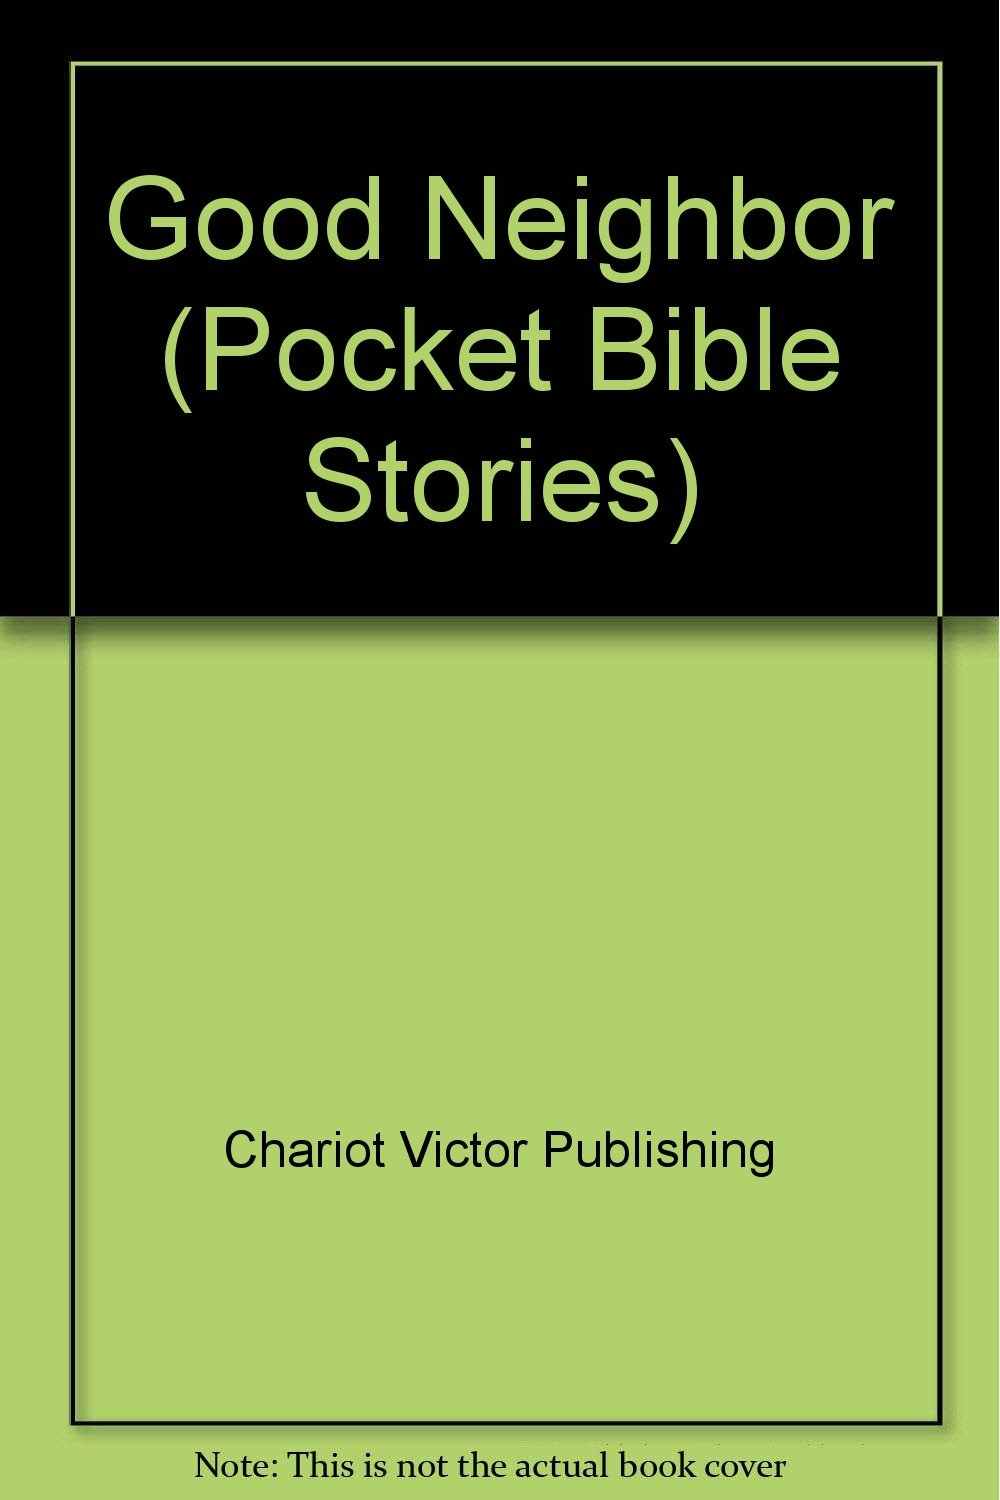 Good Neighbor (Pocket Bible Stories)